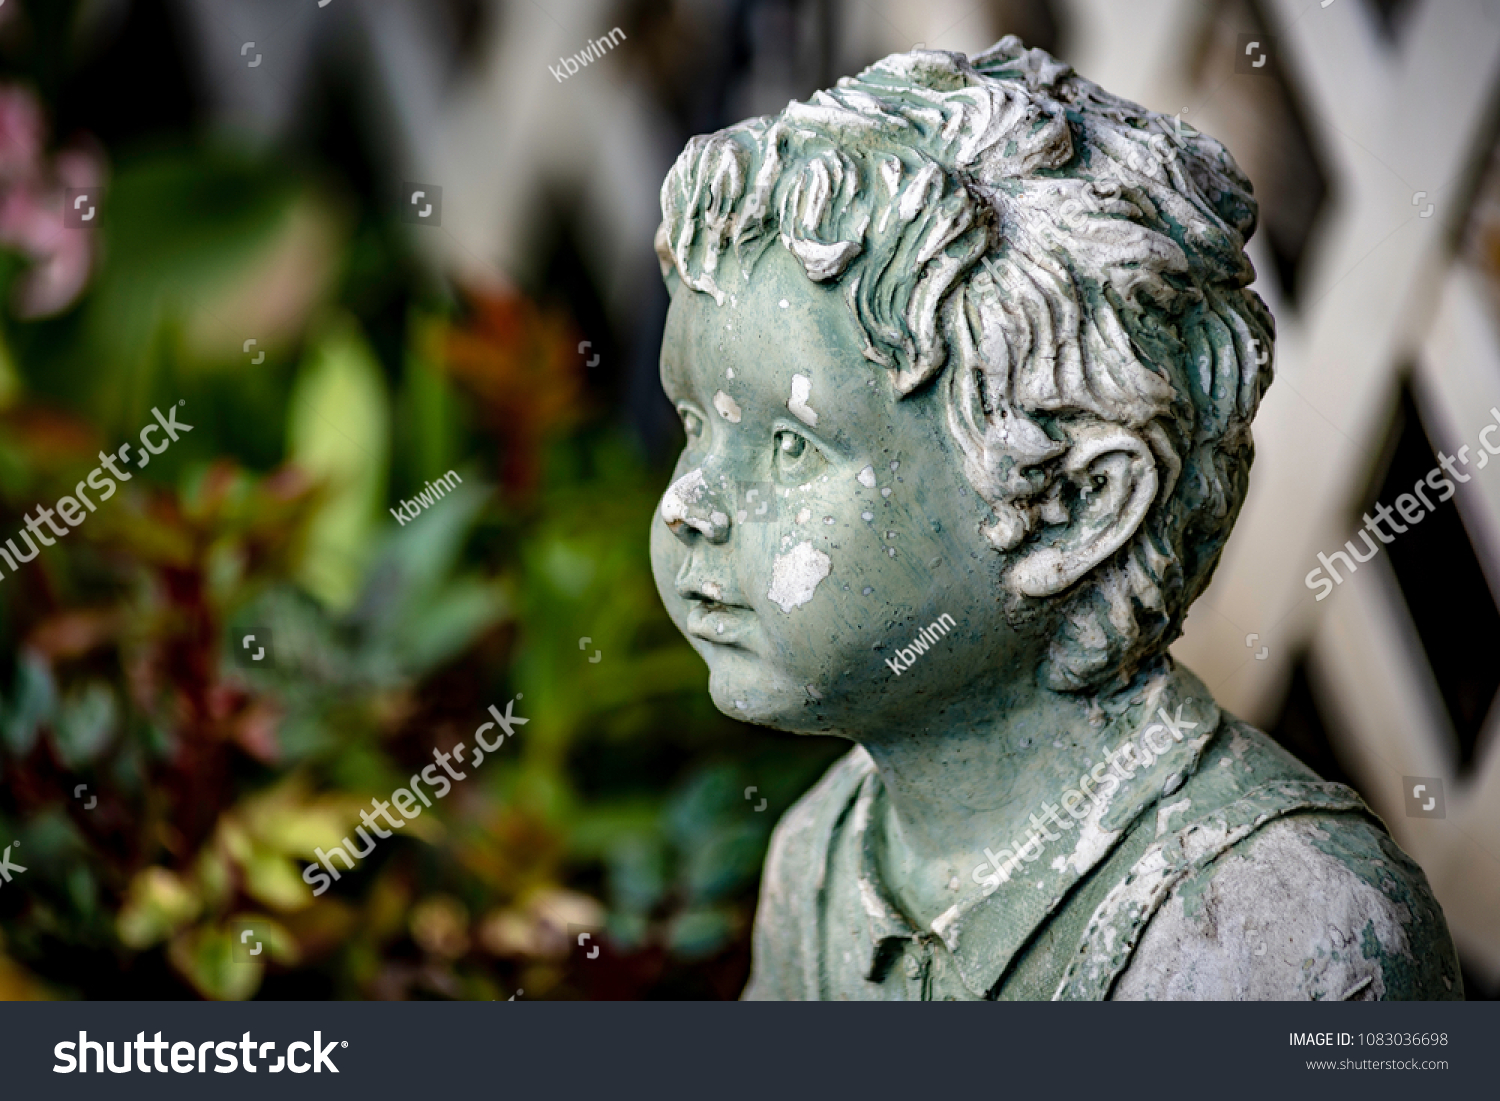 A Profile View Of A Decrepit Garden Statue Of A Little Boy Staring Off Into  The